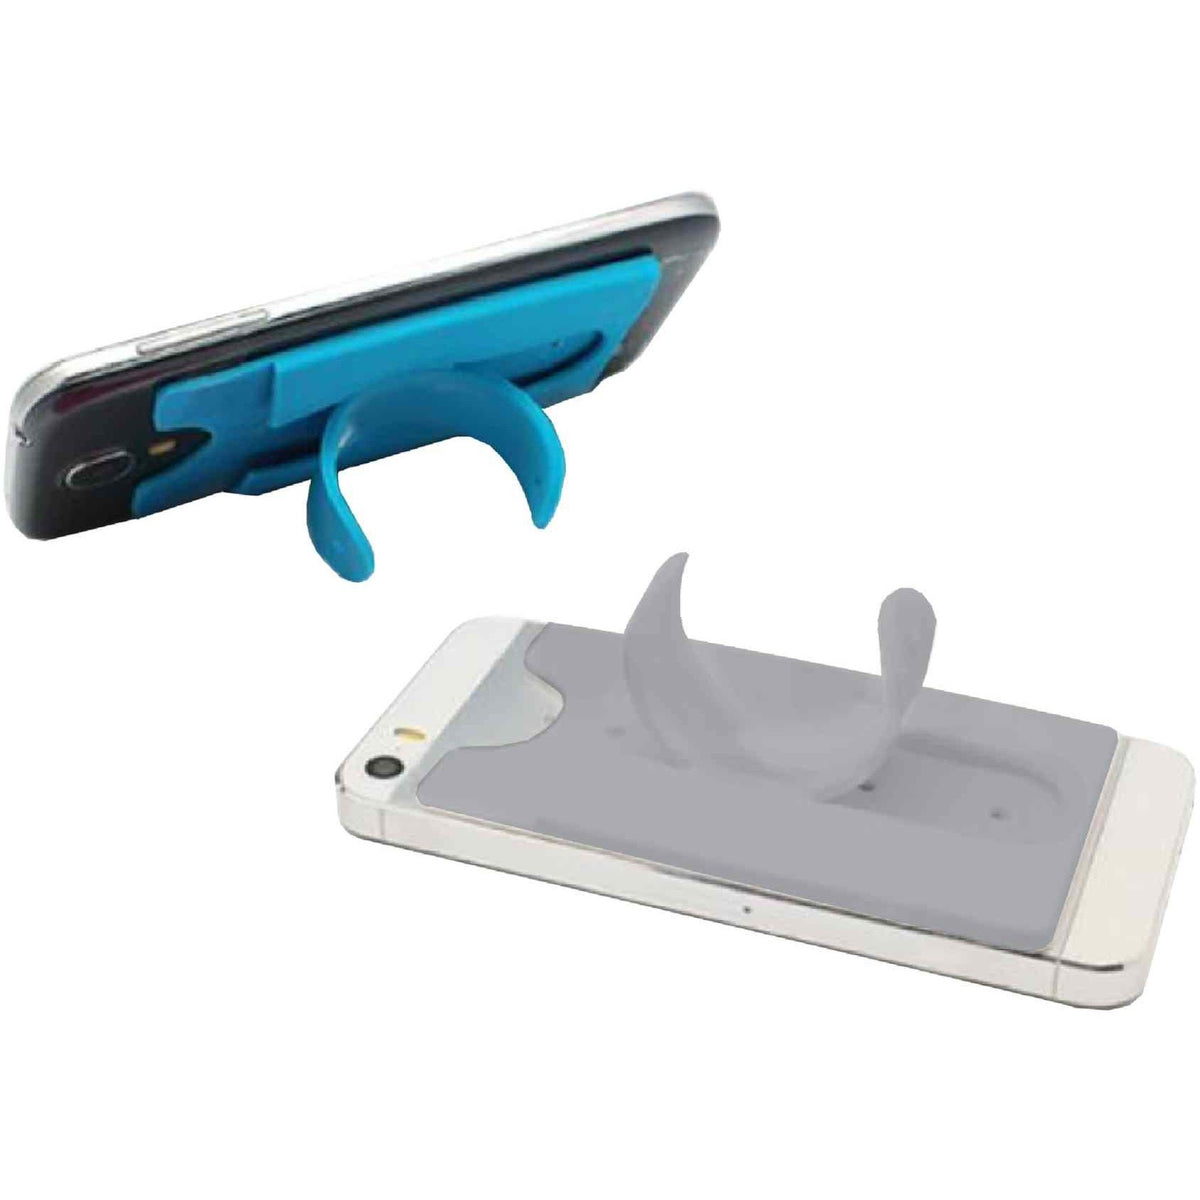 Portable Card Holder & Phone Stand